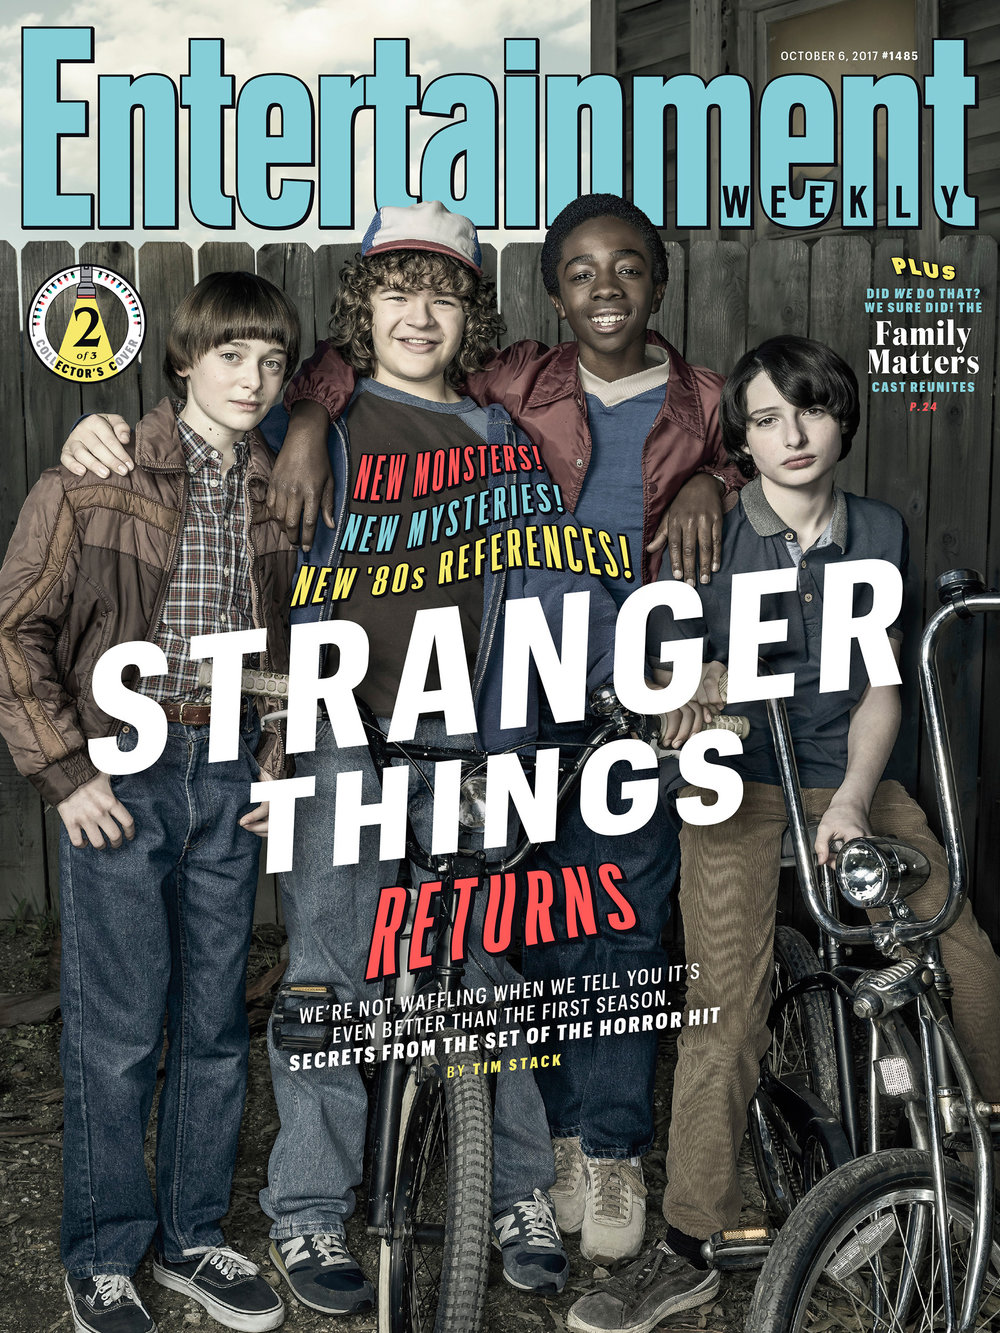 new-stranger-things-season-2-ew-covers-and-details-all-roads-lead-to-the-shadow-monster1